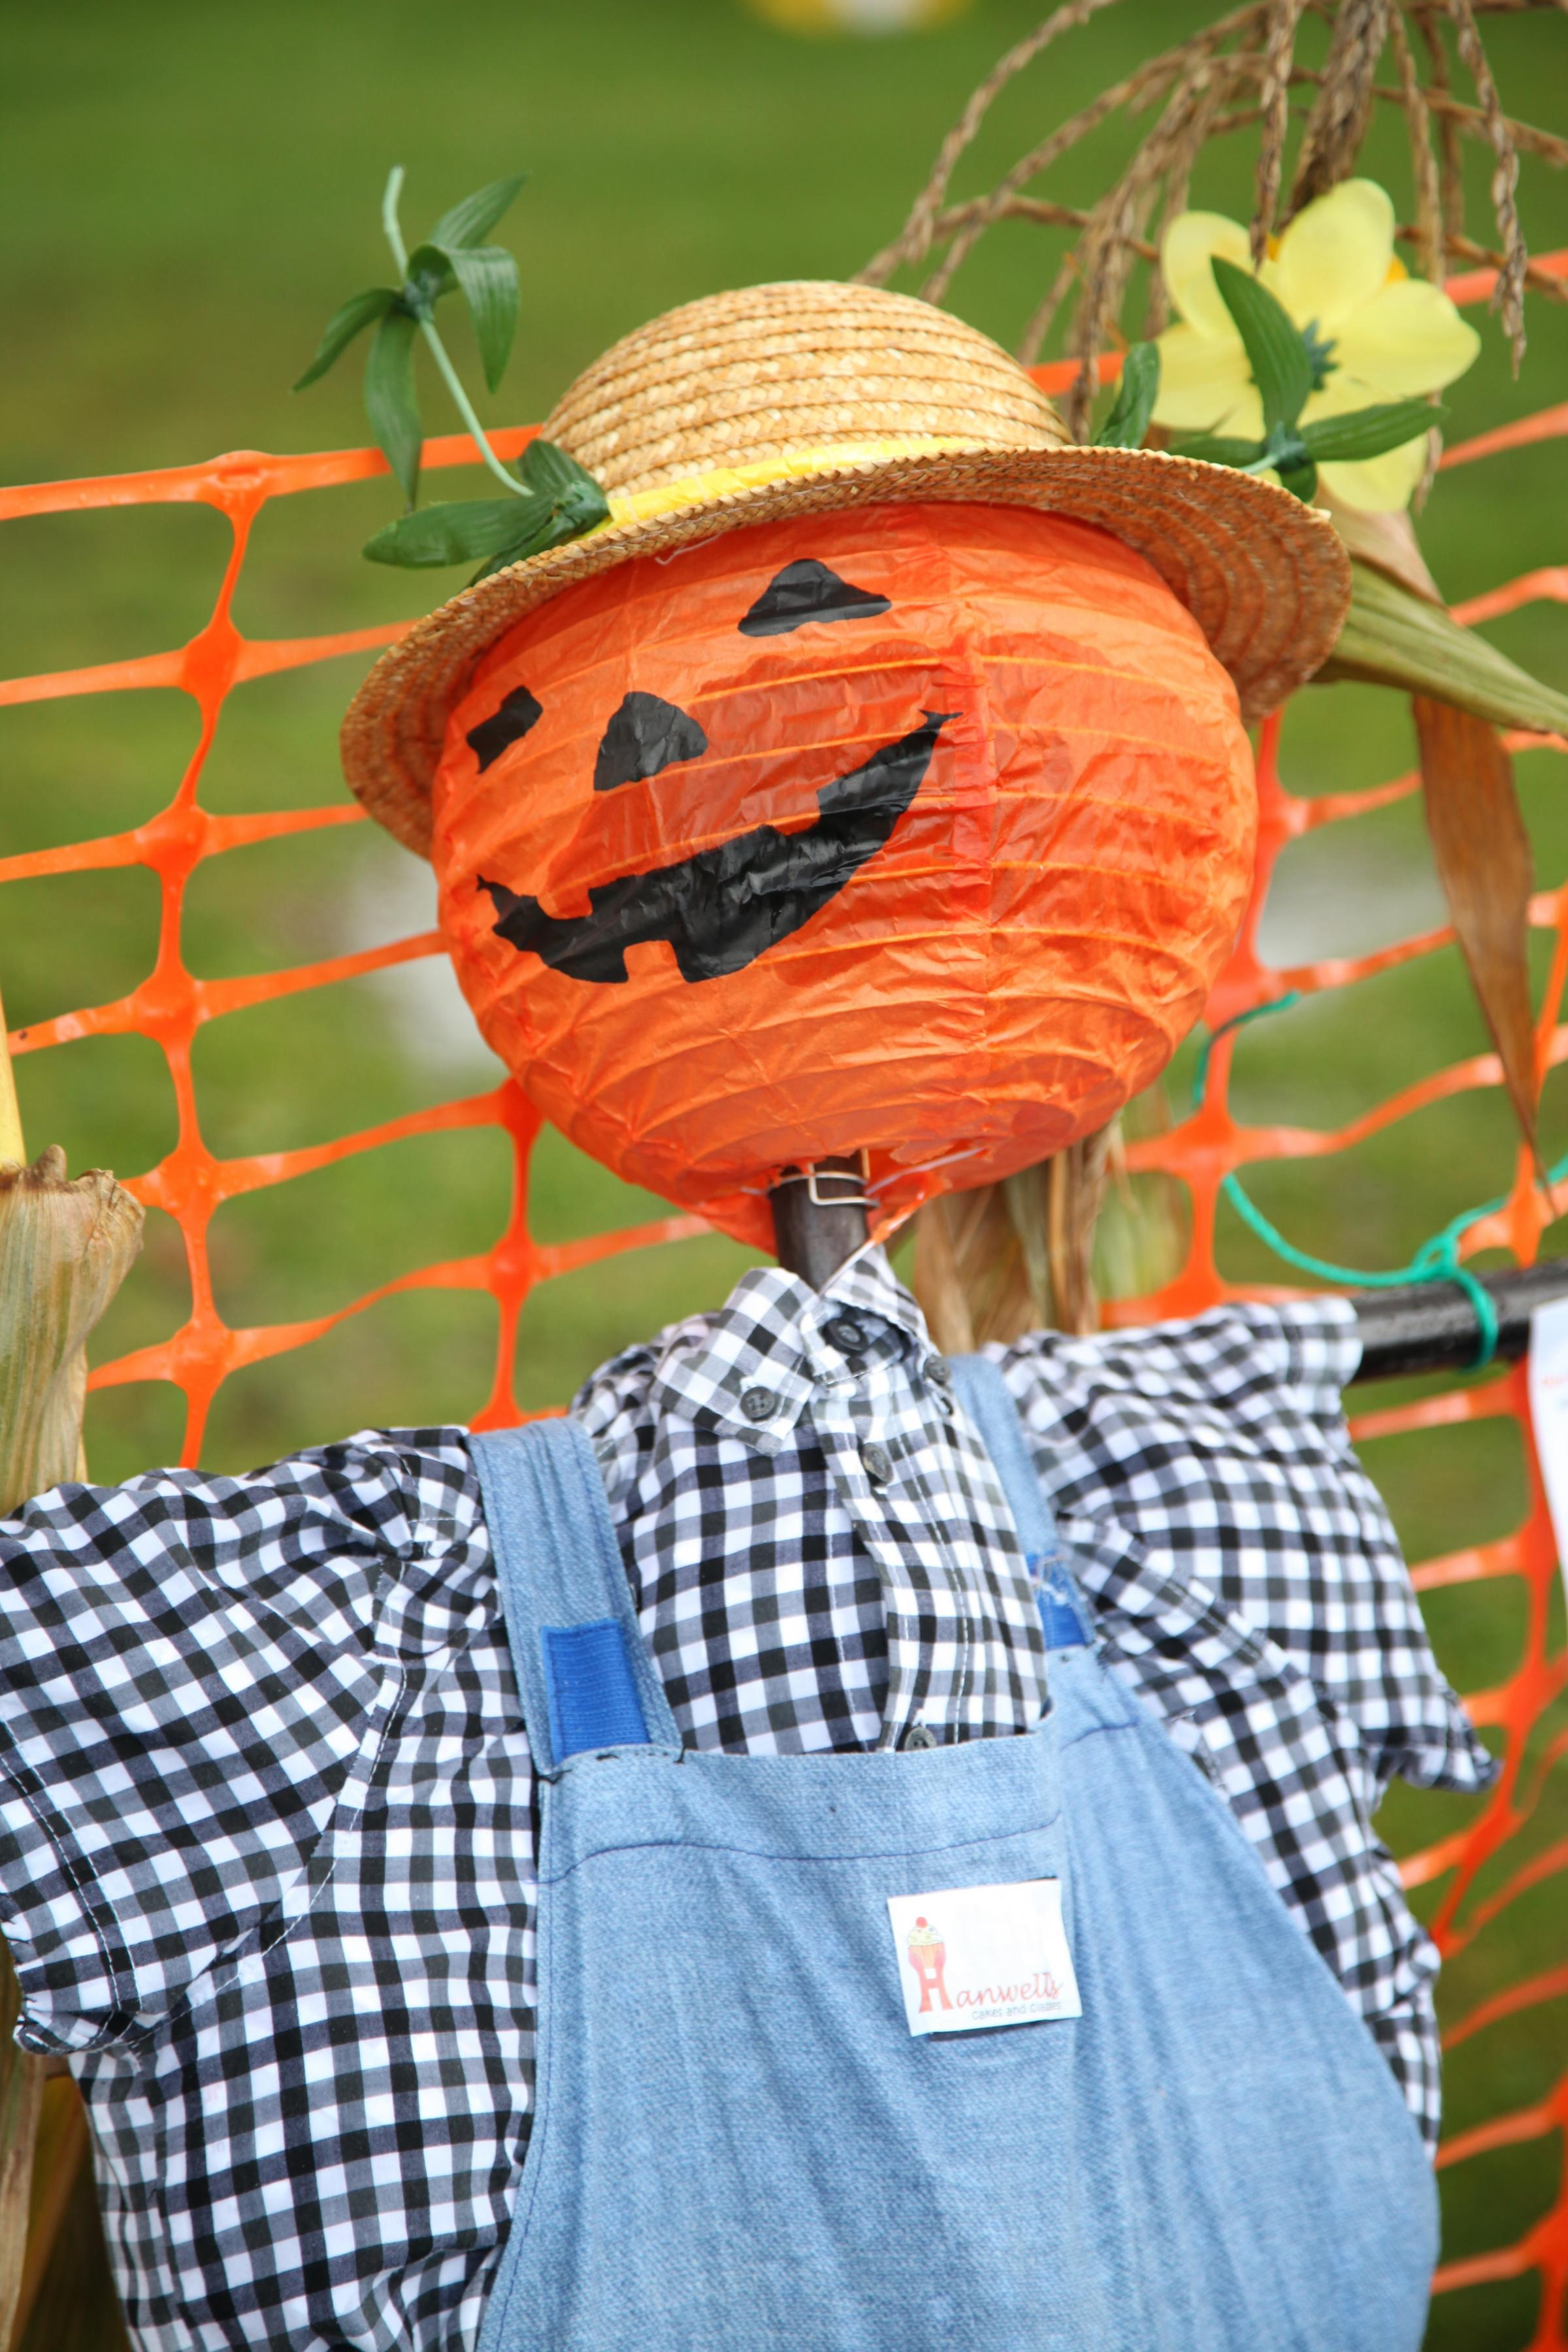 11/10/14 - at the annual JST Pumpkin Festival and Scarecrow Avenue at Royal Victoria Country Park, Netley, Southampton. Photo: Ian Hinchliffe.